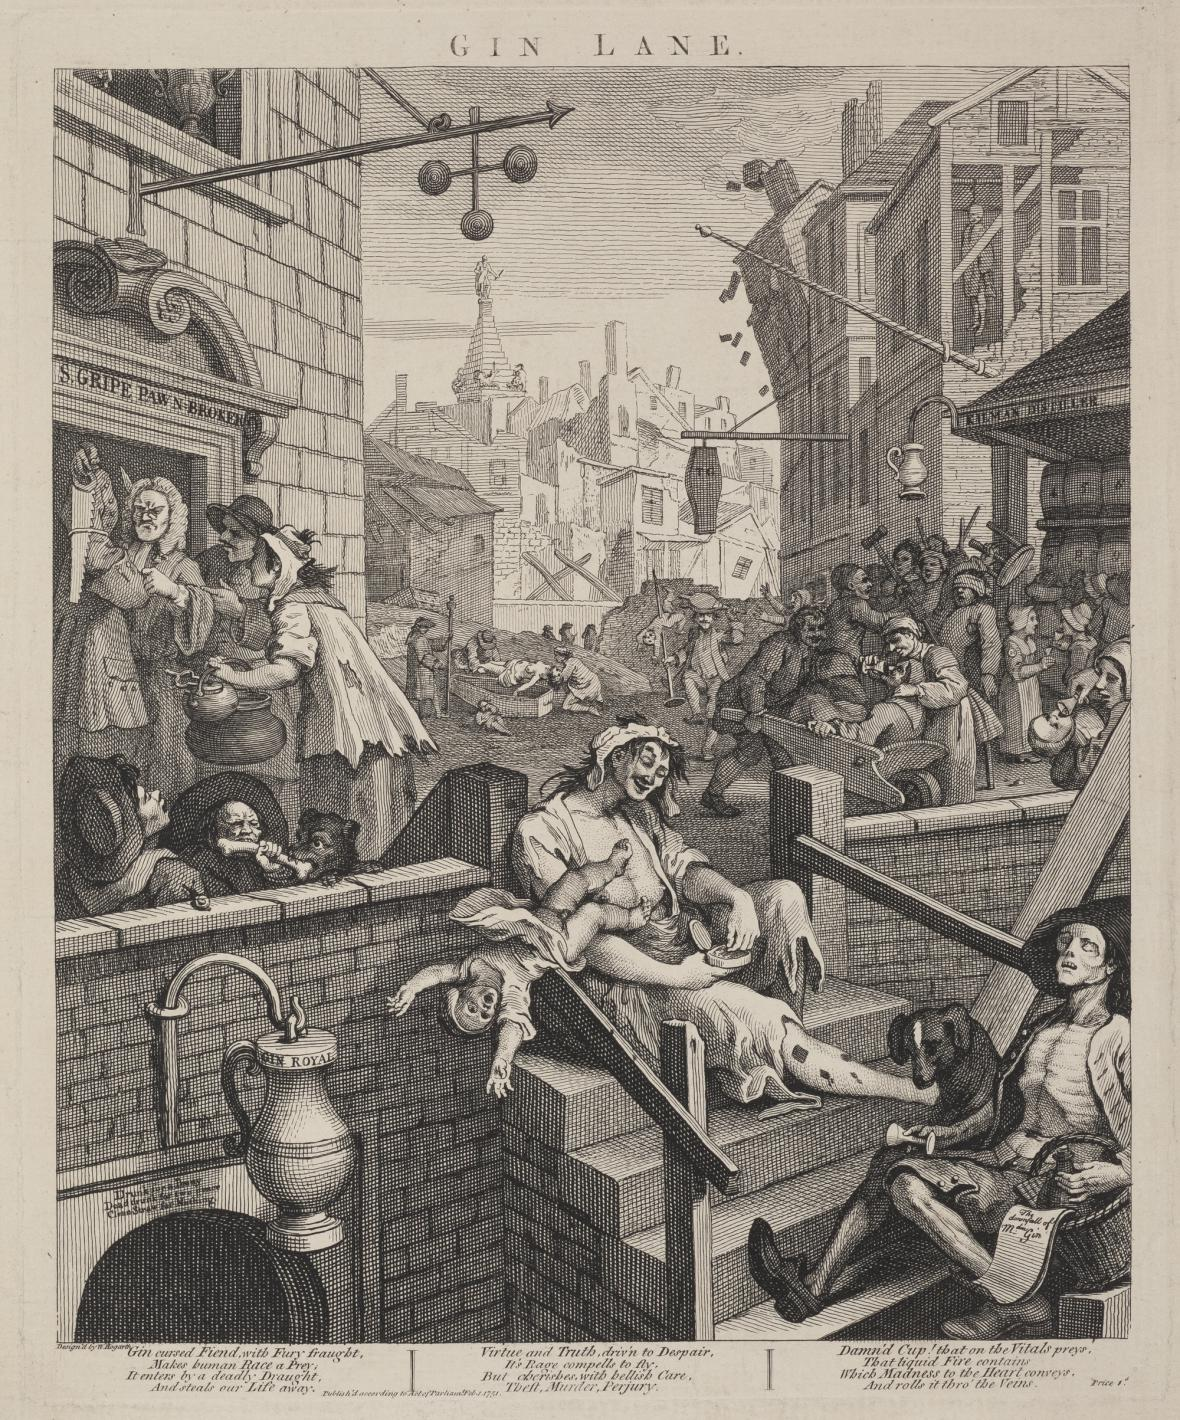 William Hogarth / Gin Lane (Ulička ginu), 1751